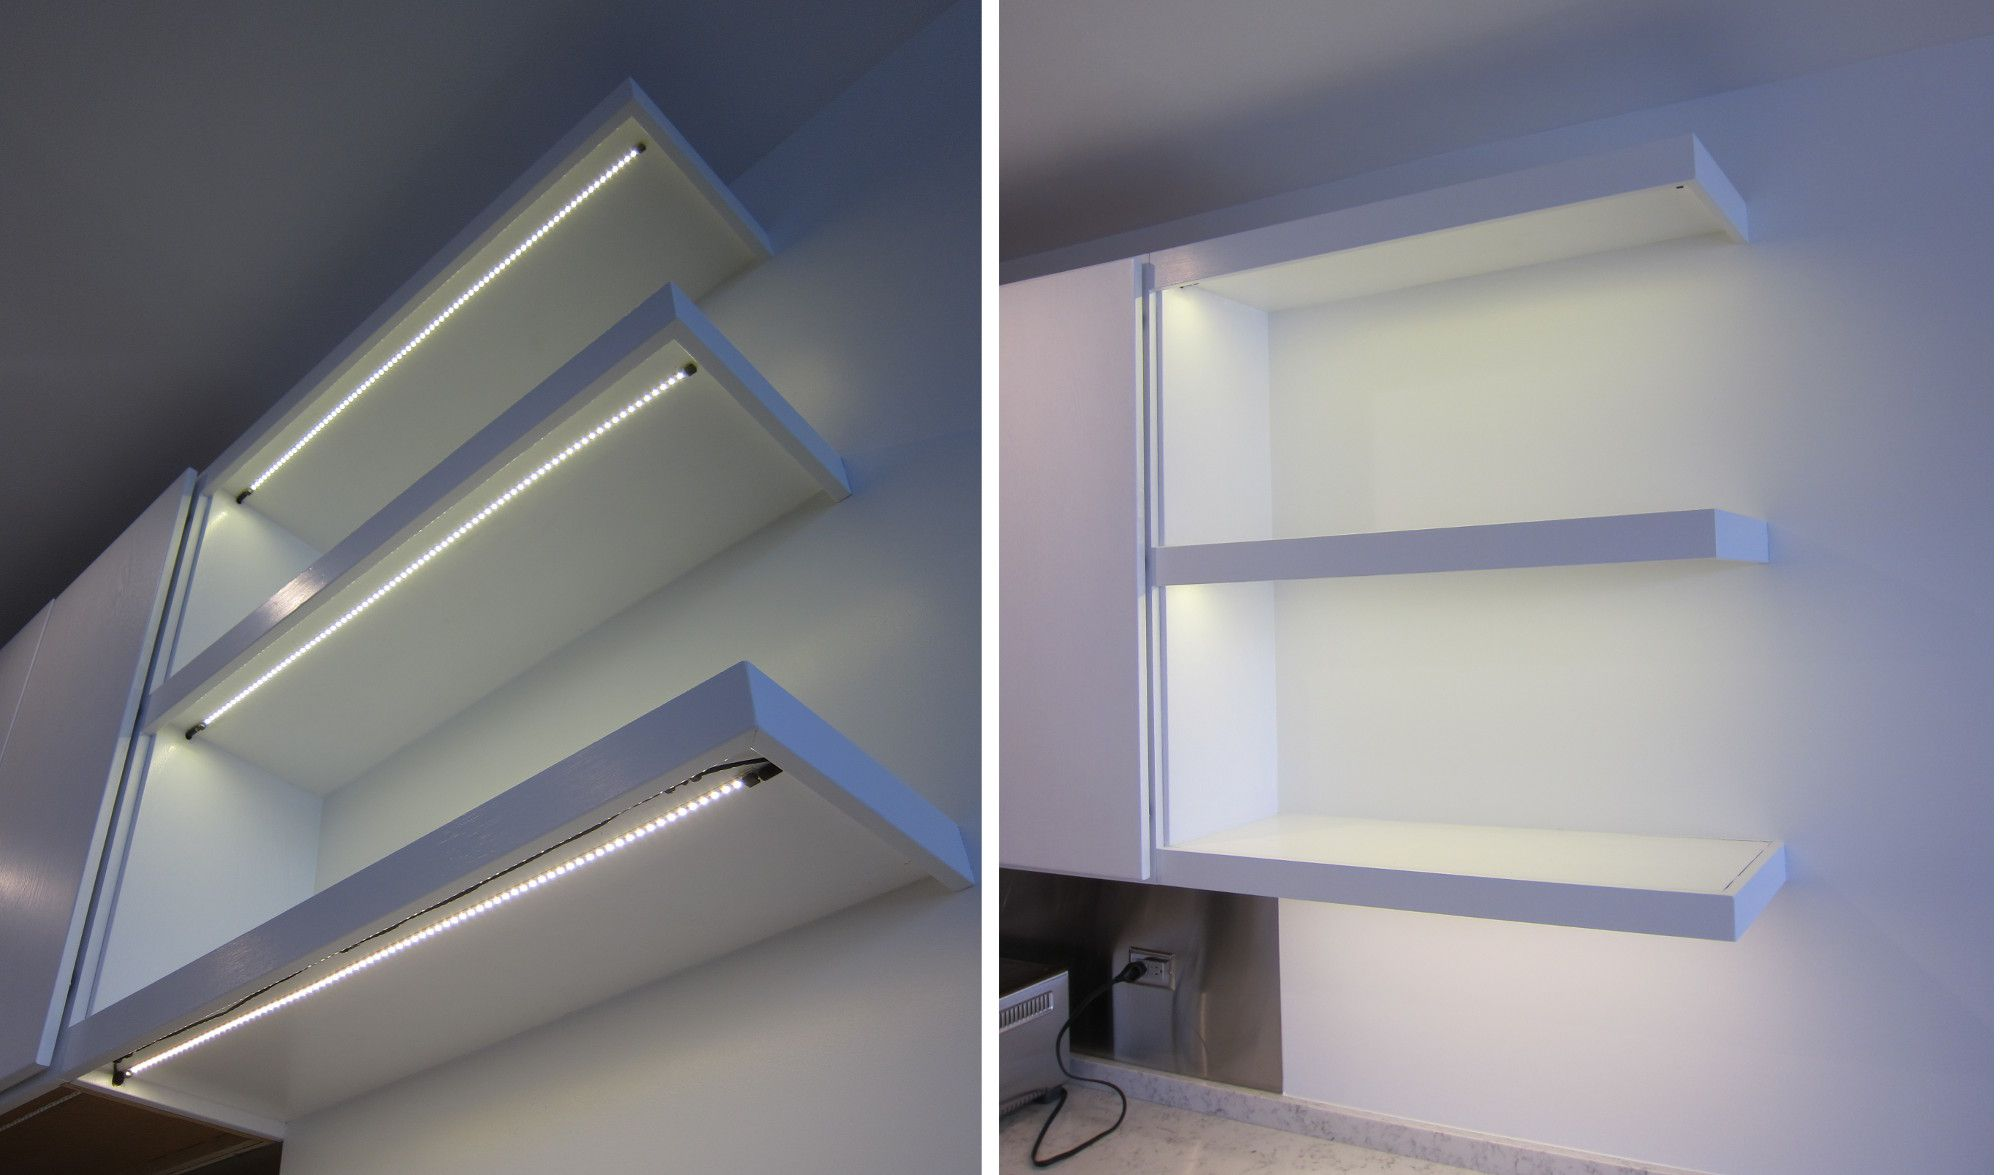 Regal Mit Beleuchtung Under The Shelf Customizable Led Strips By Inspired Led